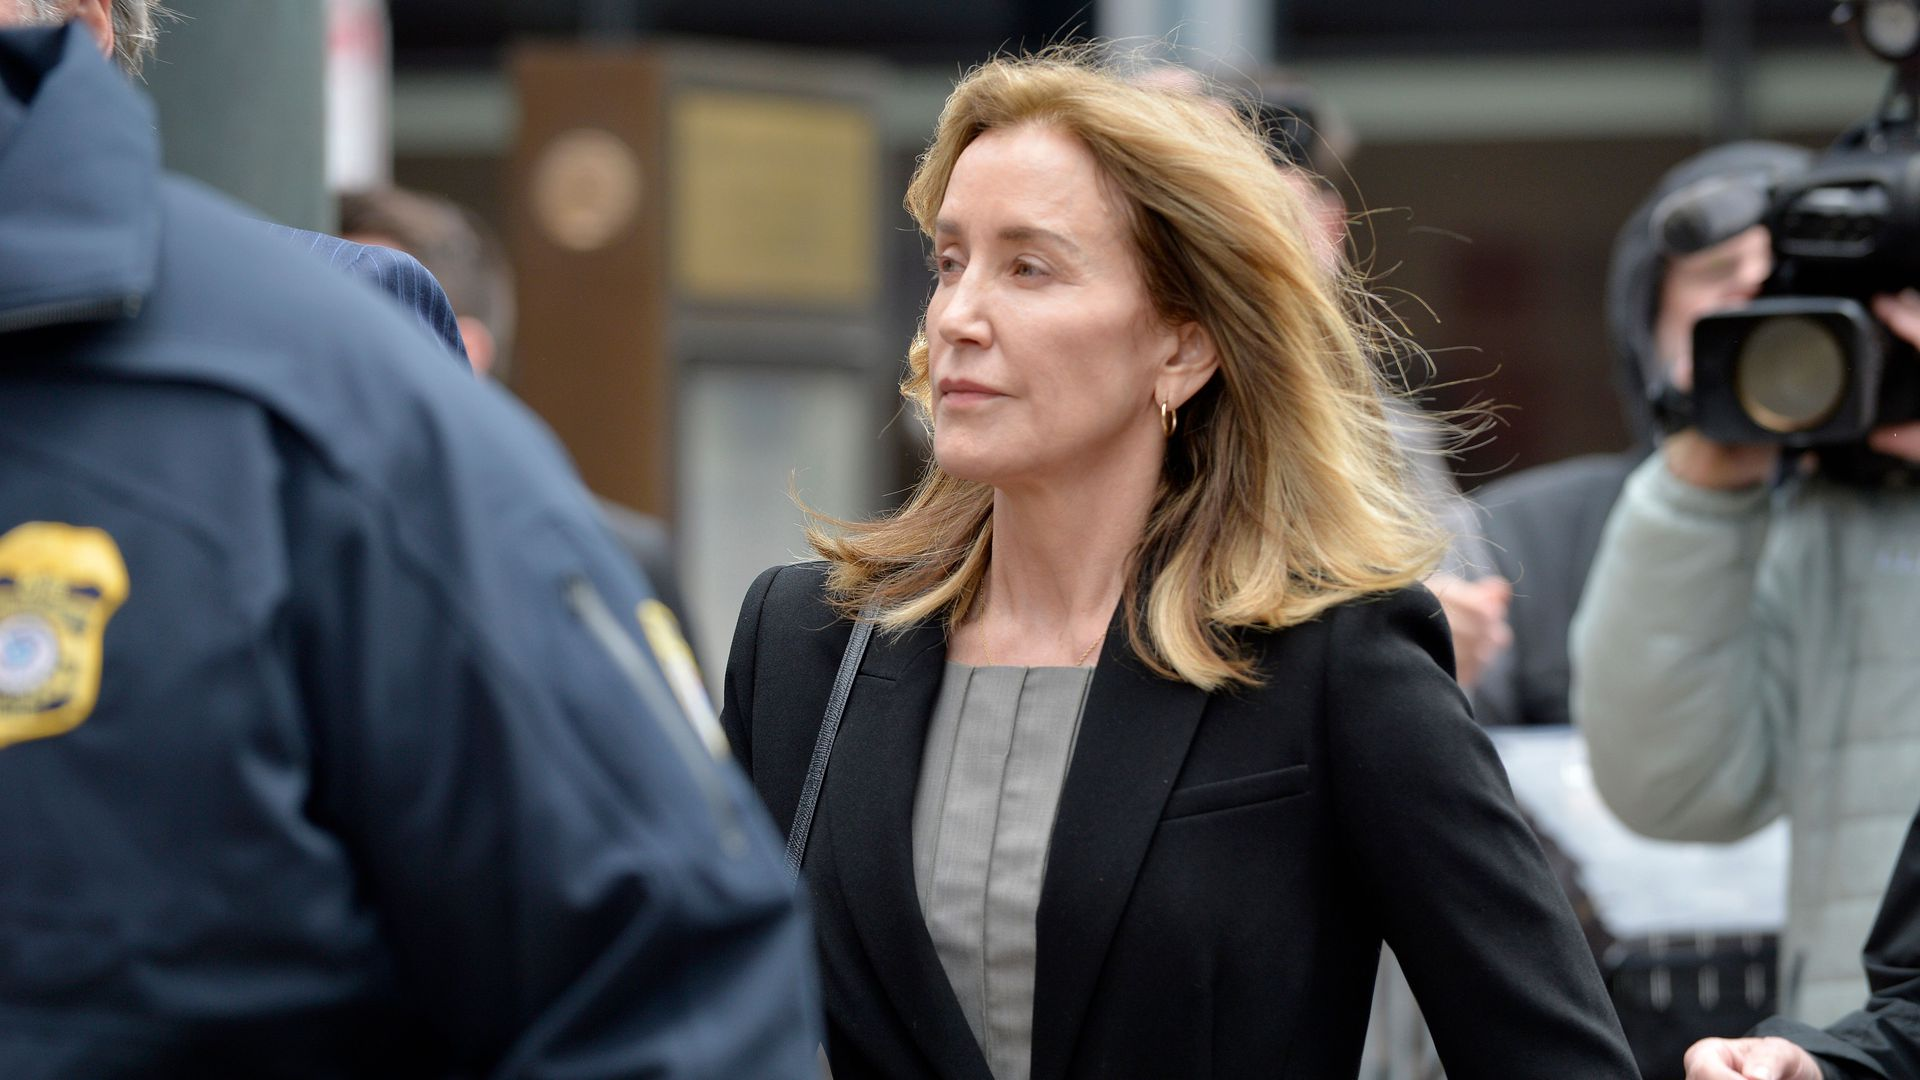 Actress Felicity Huffman is escorted by Police into court on May 13, 2019 in Boston, Massachusetts.